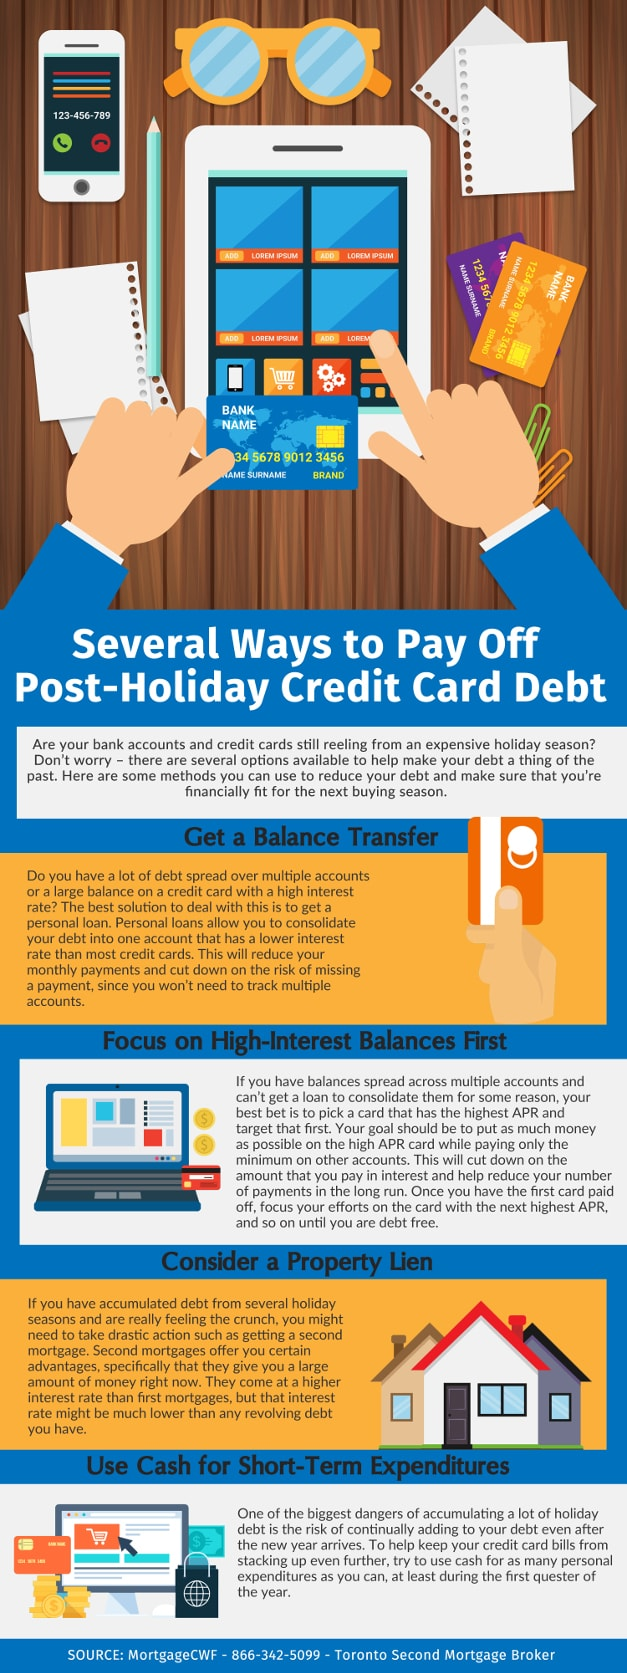 Several Ways to Pay Off Post-Holiday Credit Card Debt - Infographic